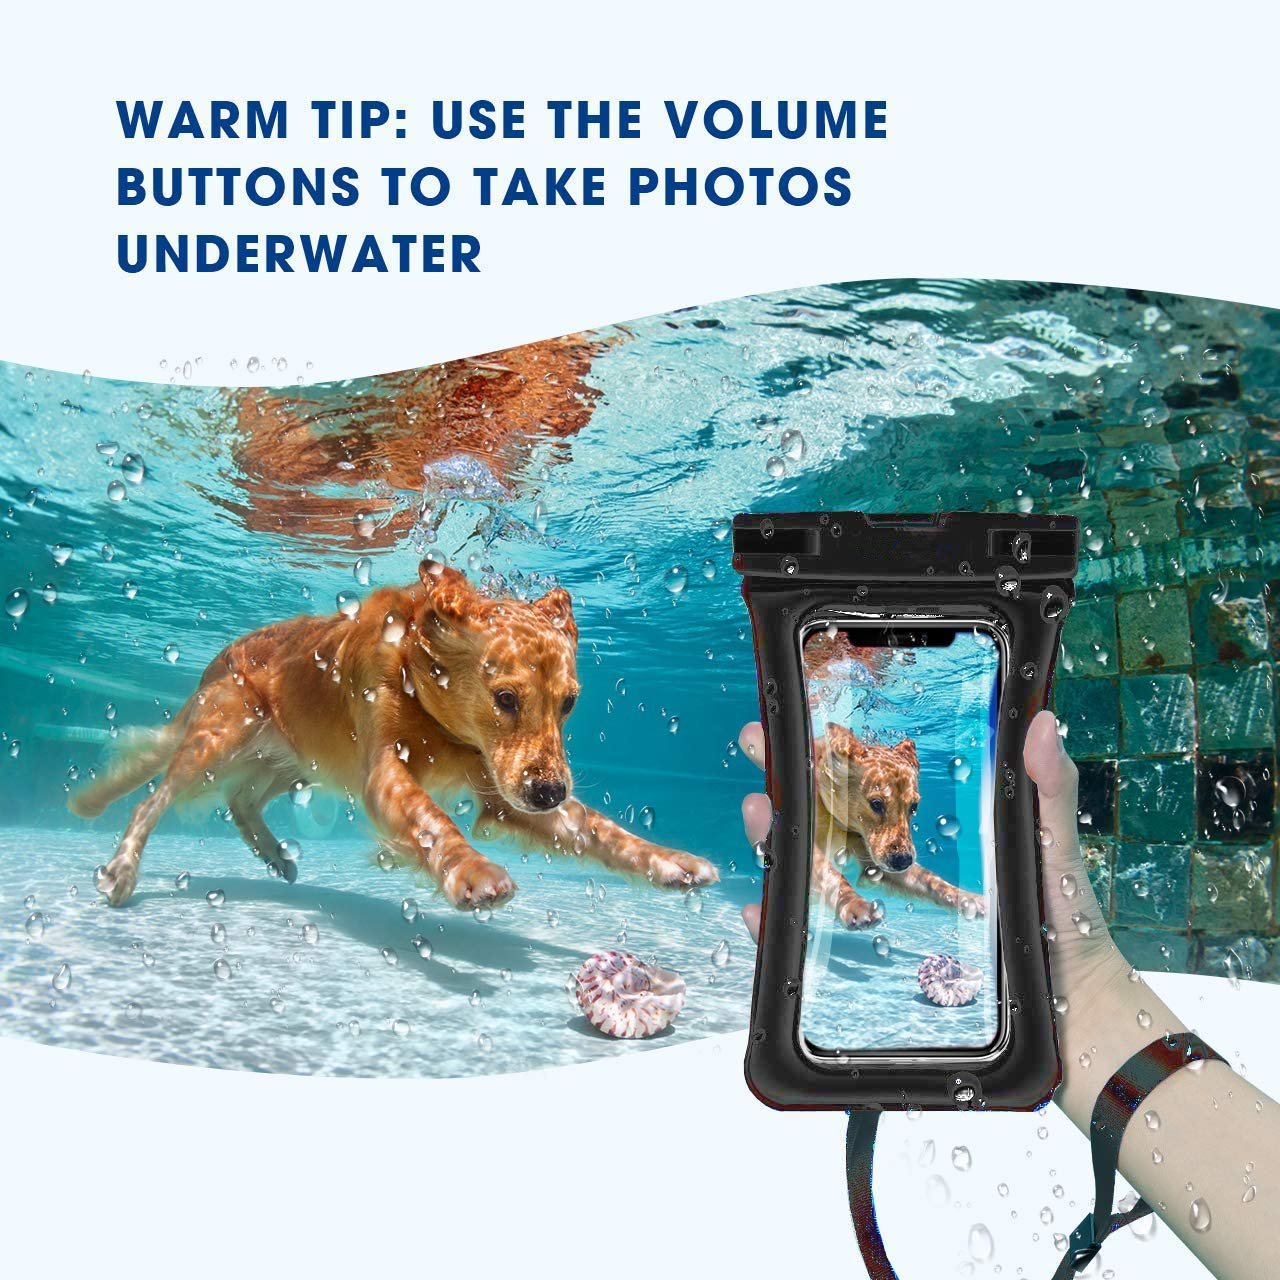 WJZXTEK Universal Floating Waterproof Case,IPX8 Waterproof Phone Pouch Underwater Dry Bag,Compatible iPhone Xs Max/Xr/X/8/8plus/7/7plus Galaxy s9/s8 Note 9/8 Google Pixel up to 6.5\